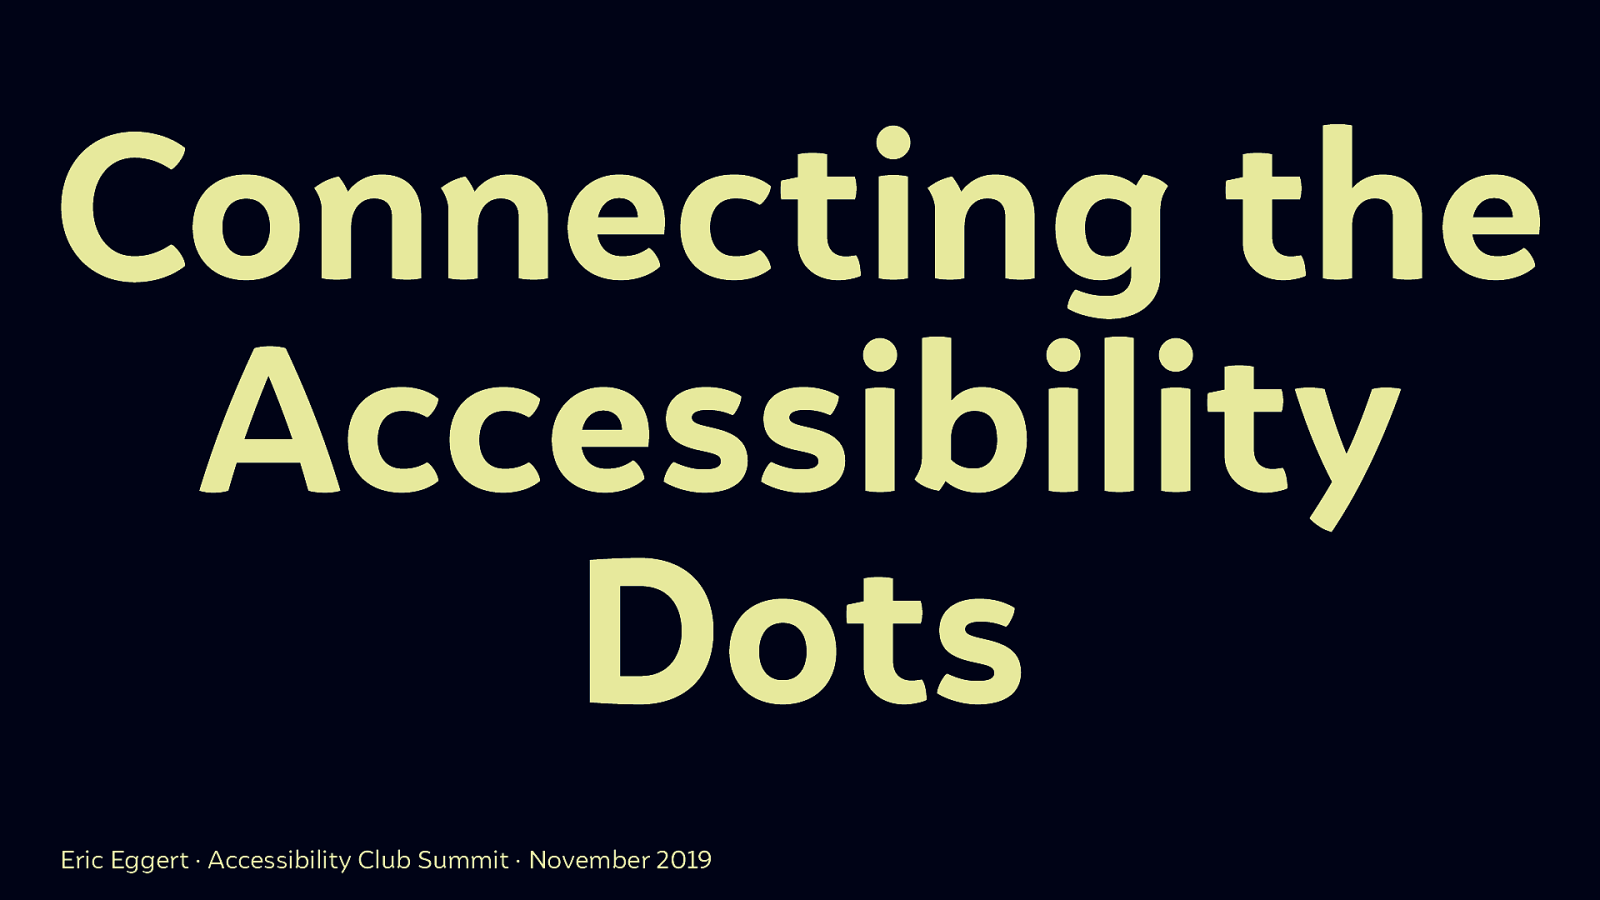 Connecting the Accessibility Dots